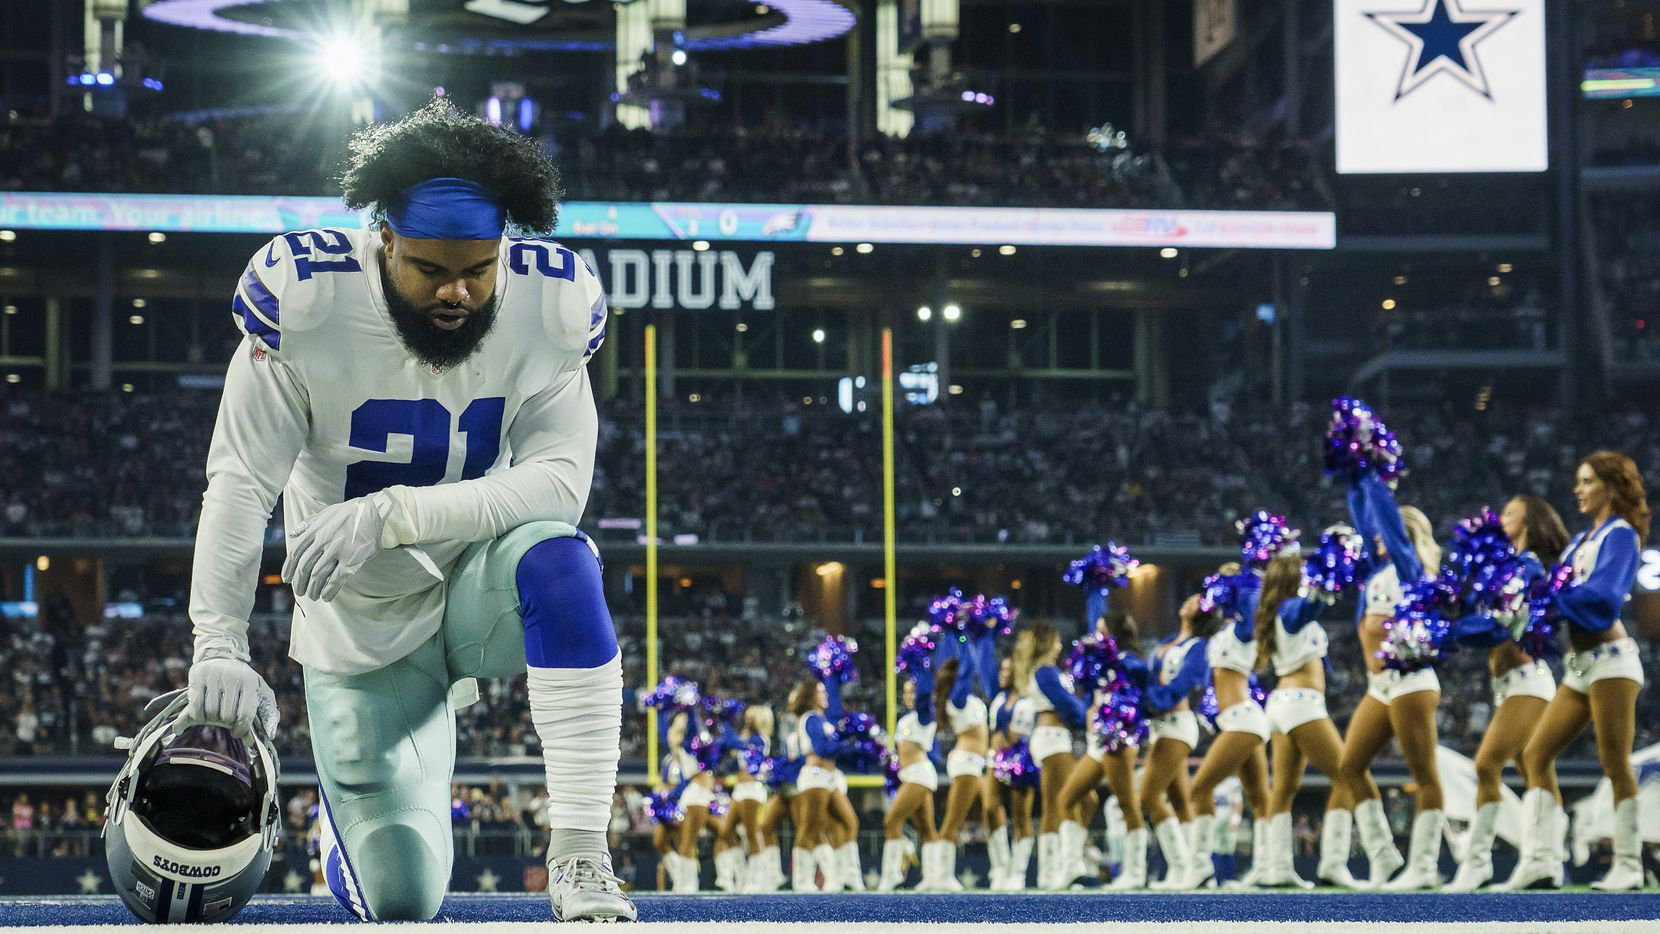 Dallas Cowboys running back Ezekiel Elliott (21) kneels in the end zone before an NFL football game at AT&T Stadium against the Philadelphia Eagles on Sunday, Oct. 20, 2019, in Arlington.